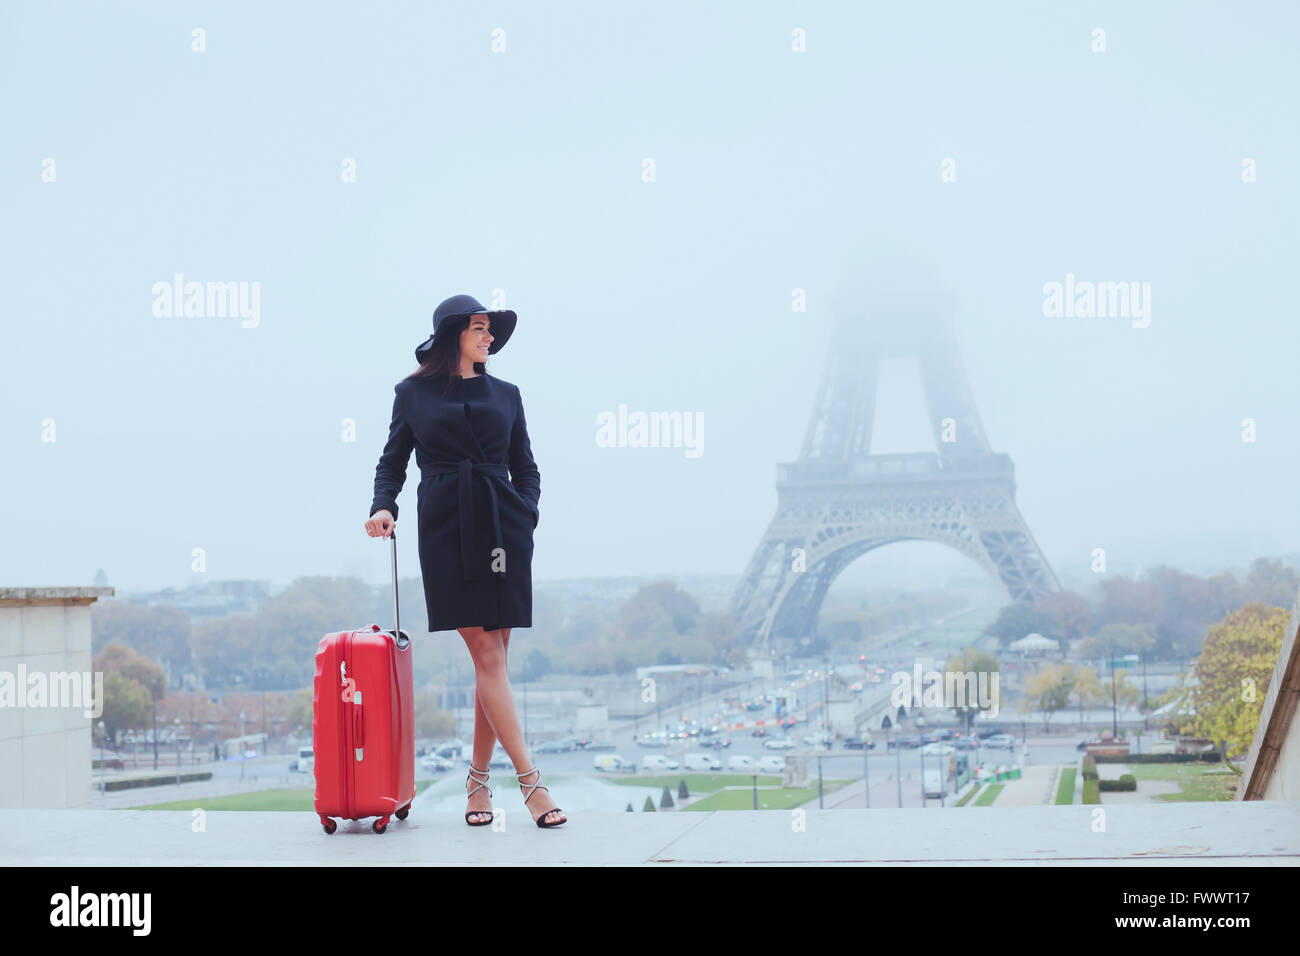 tourist in Paris, Europe tour, woman with luggage near Eiffel Tower, France - Stock Image